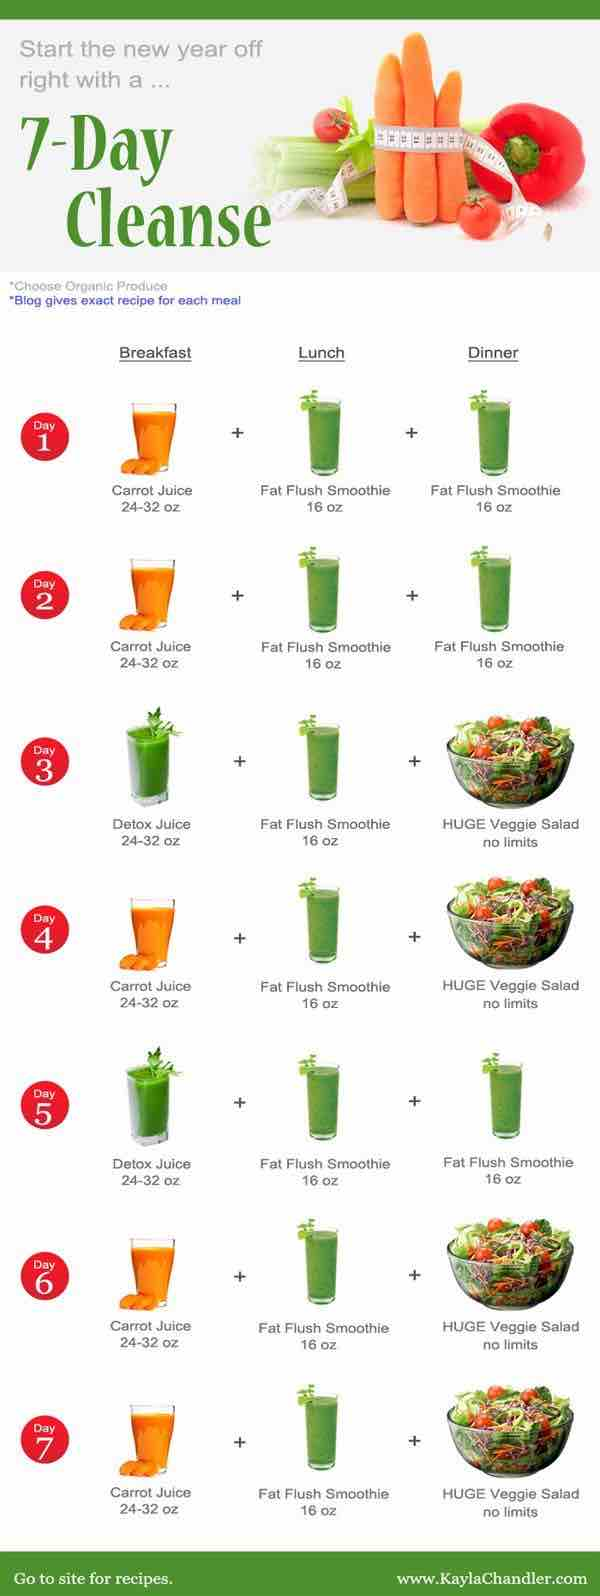 juicing-recipes-2-05052015nz